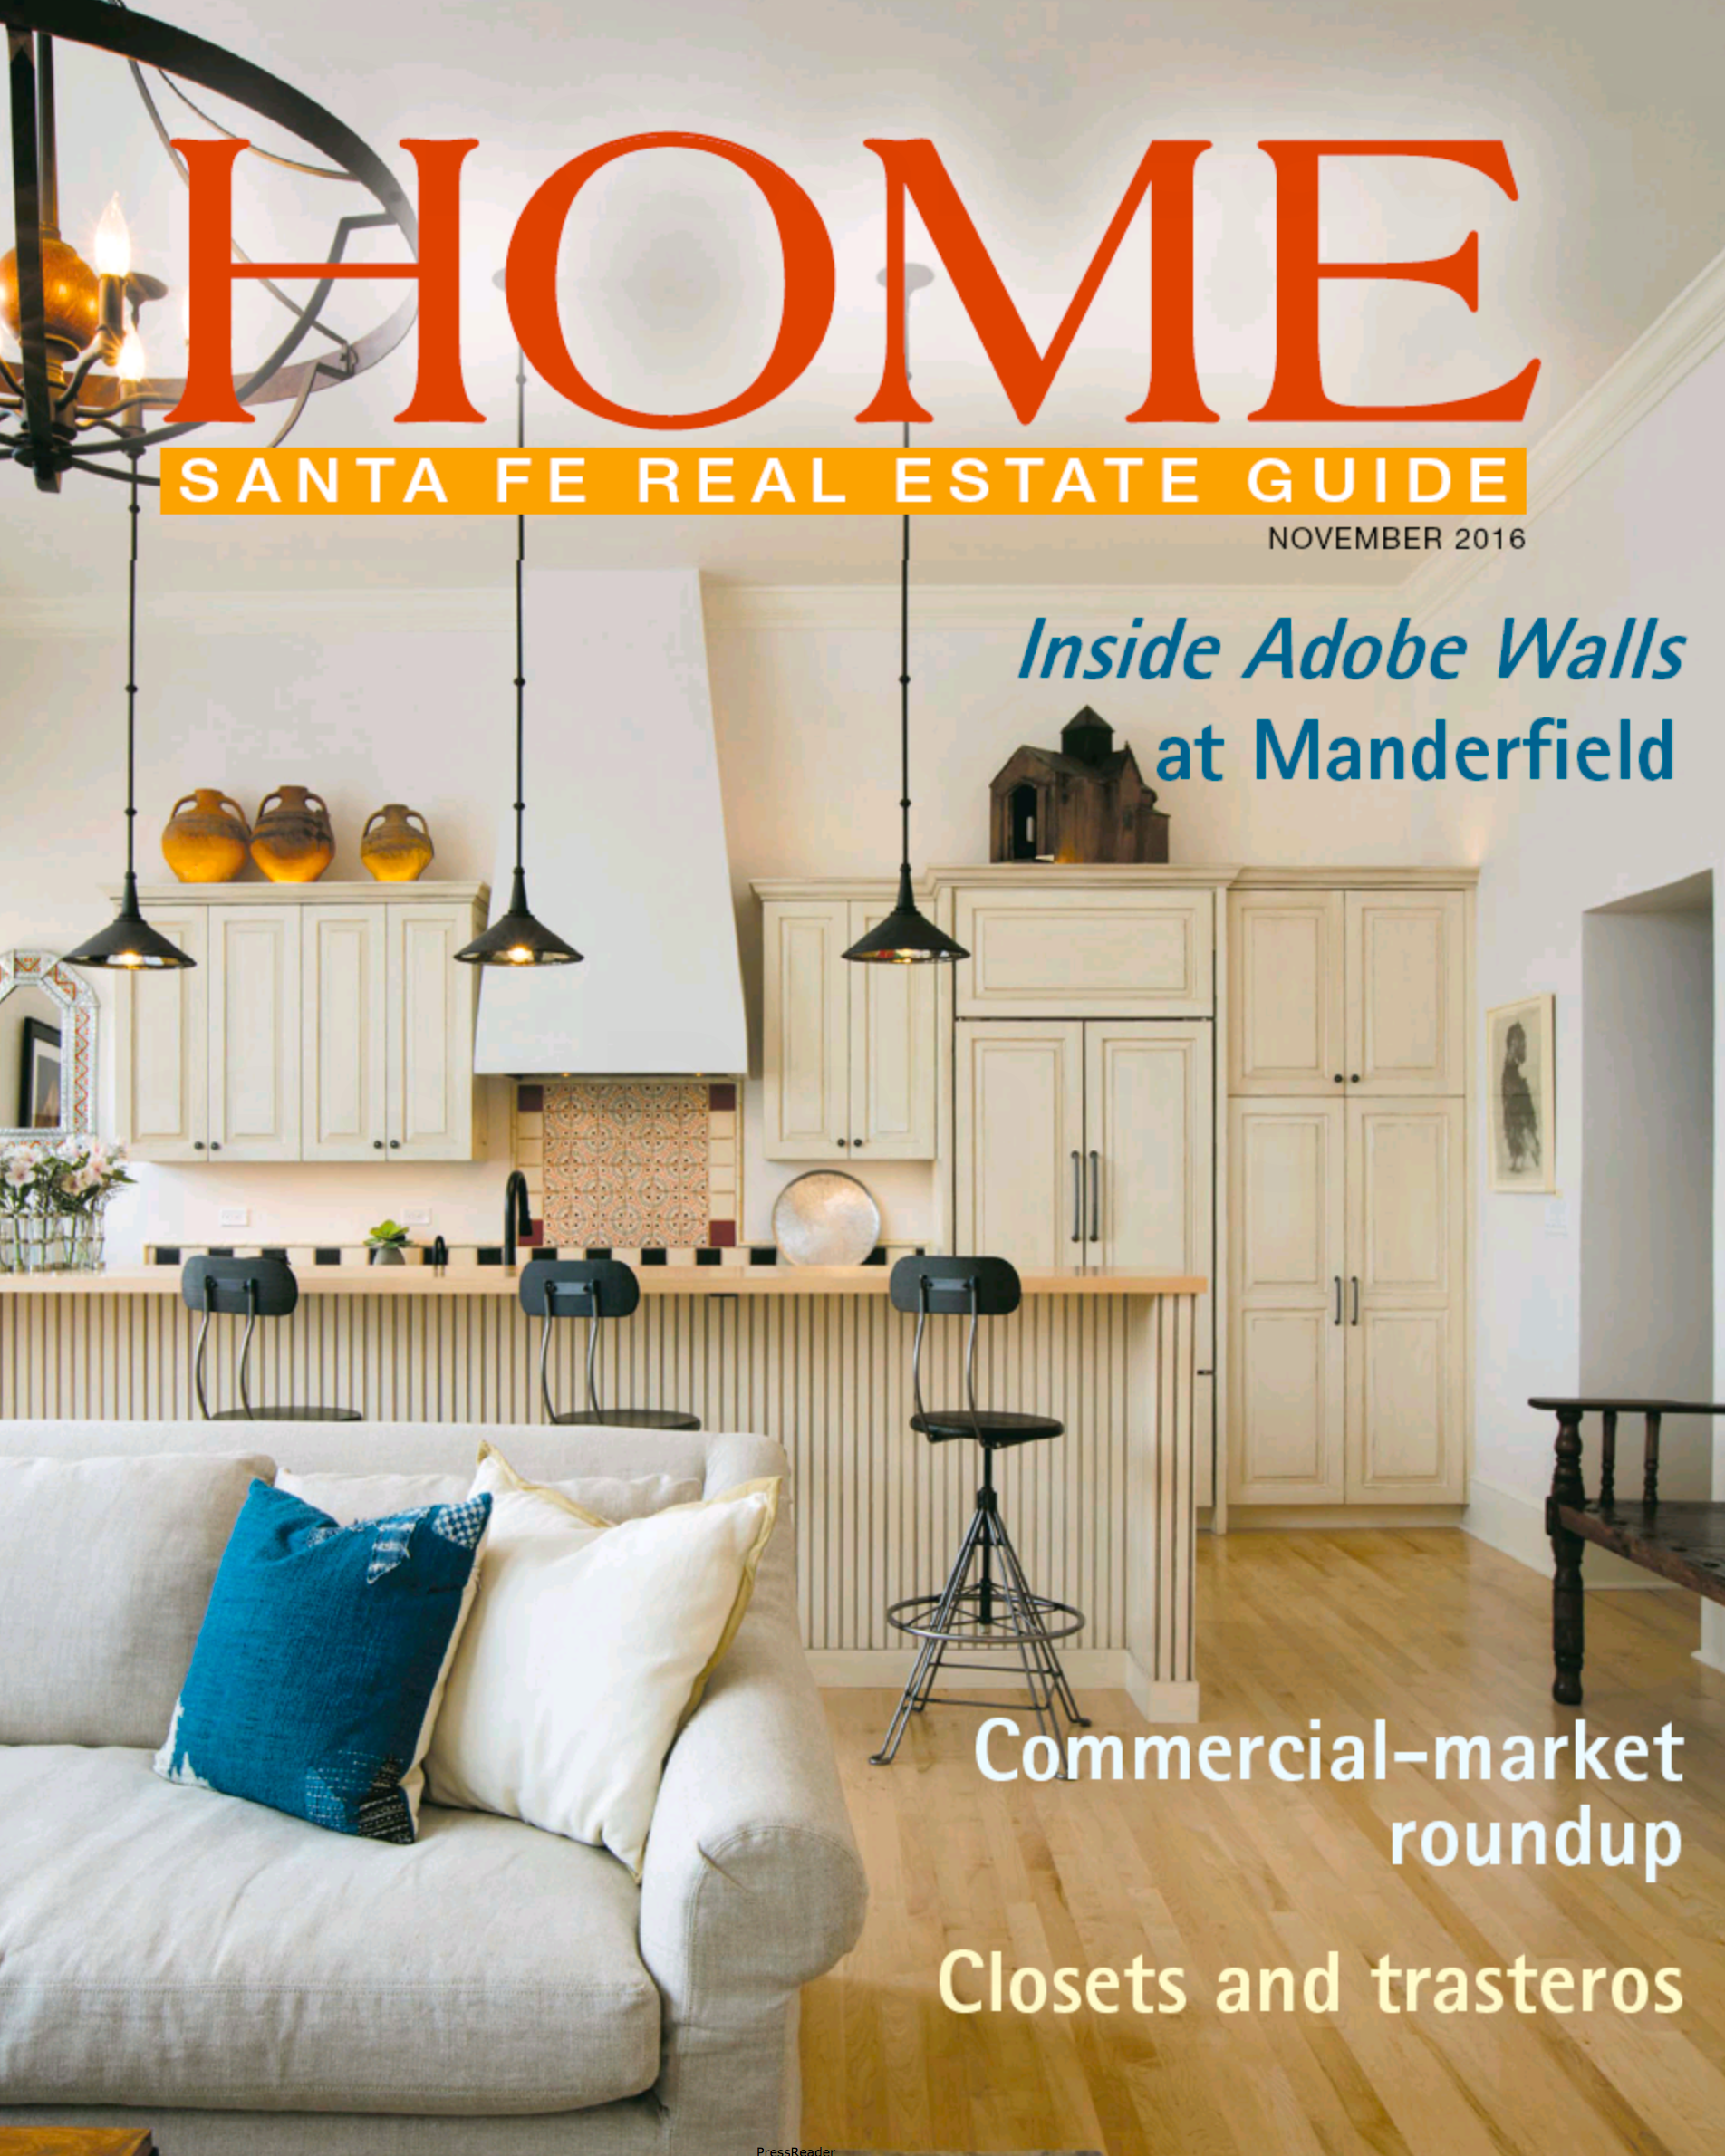 The Santa Fe New Mexican Home Magazine  features a Commercial Market Roundup, November 2016.